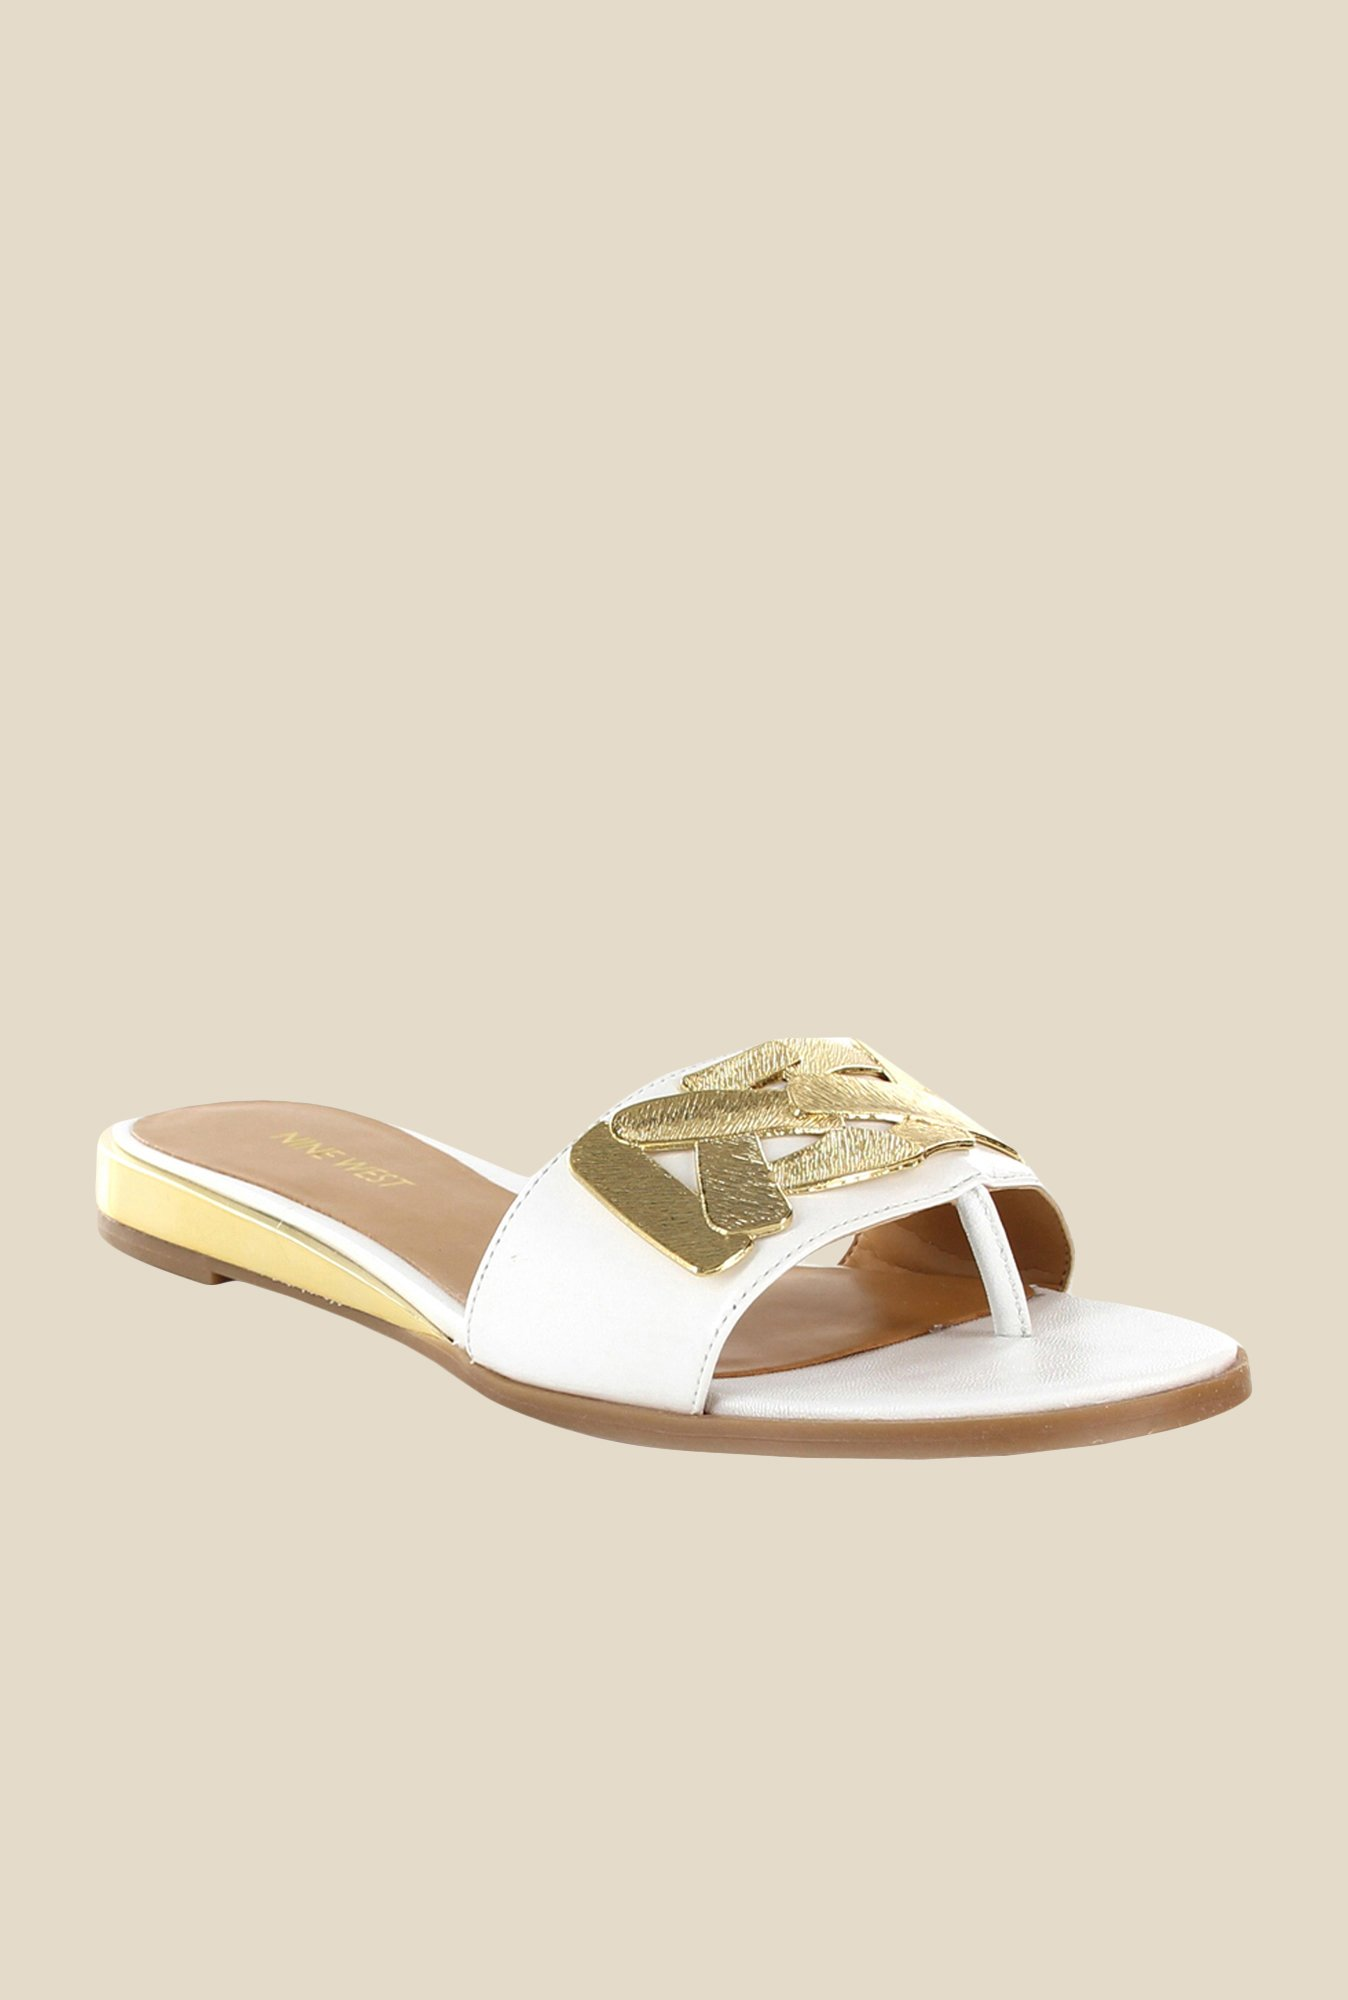 Nine West White Casual Sandals